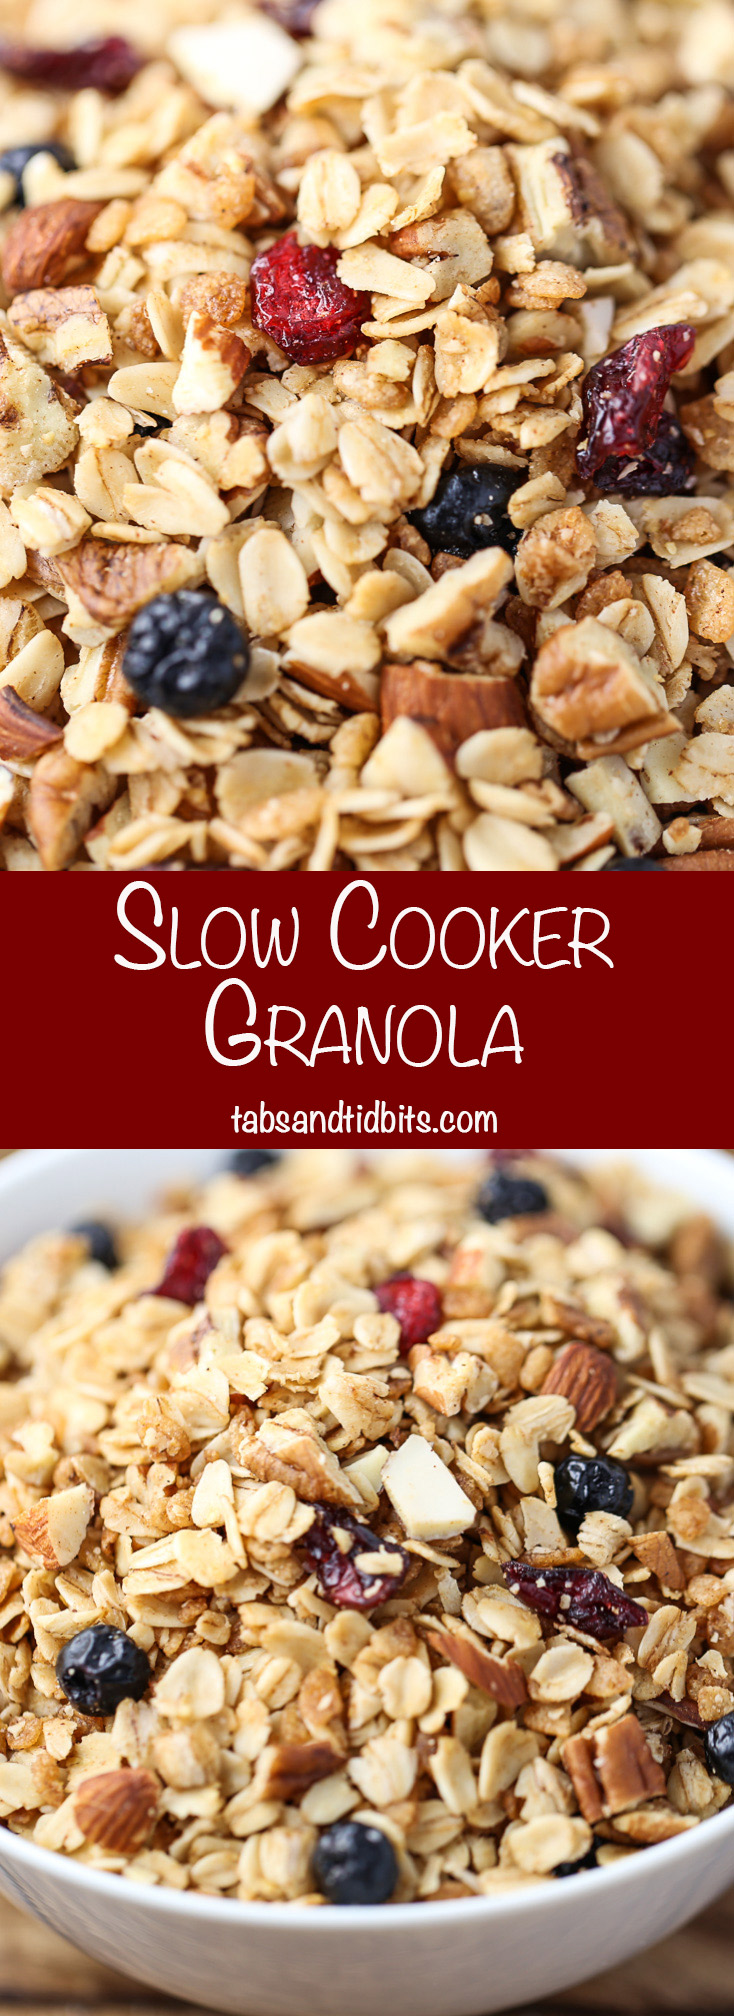 Slow Cooker Granola - Crispy granola made right in the slow cooker!